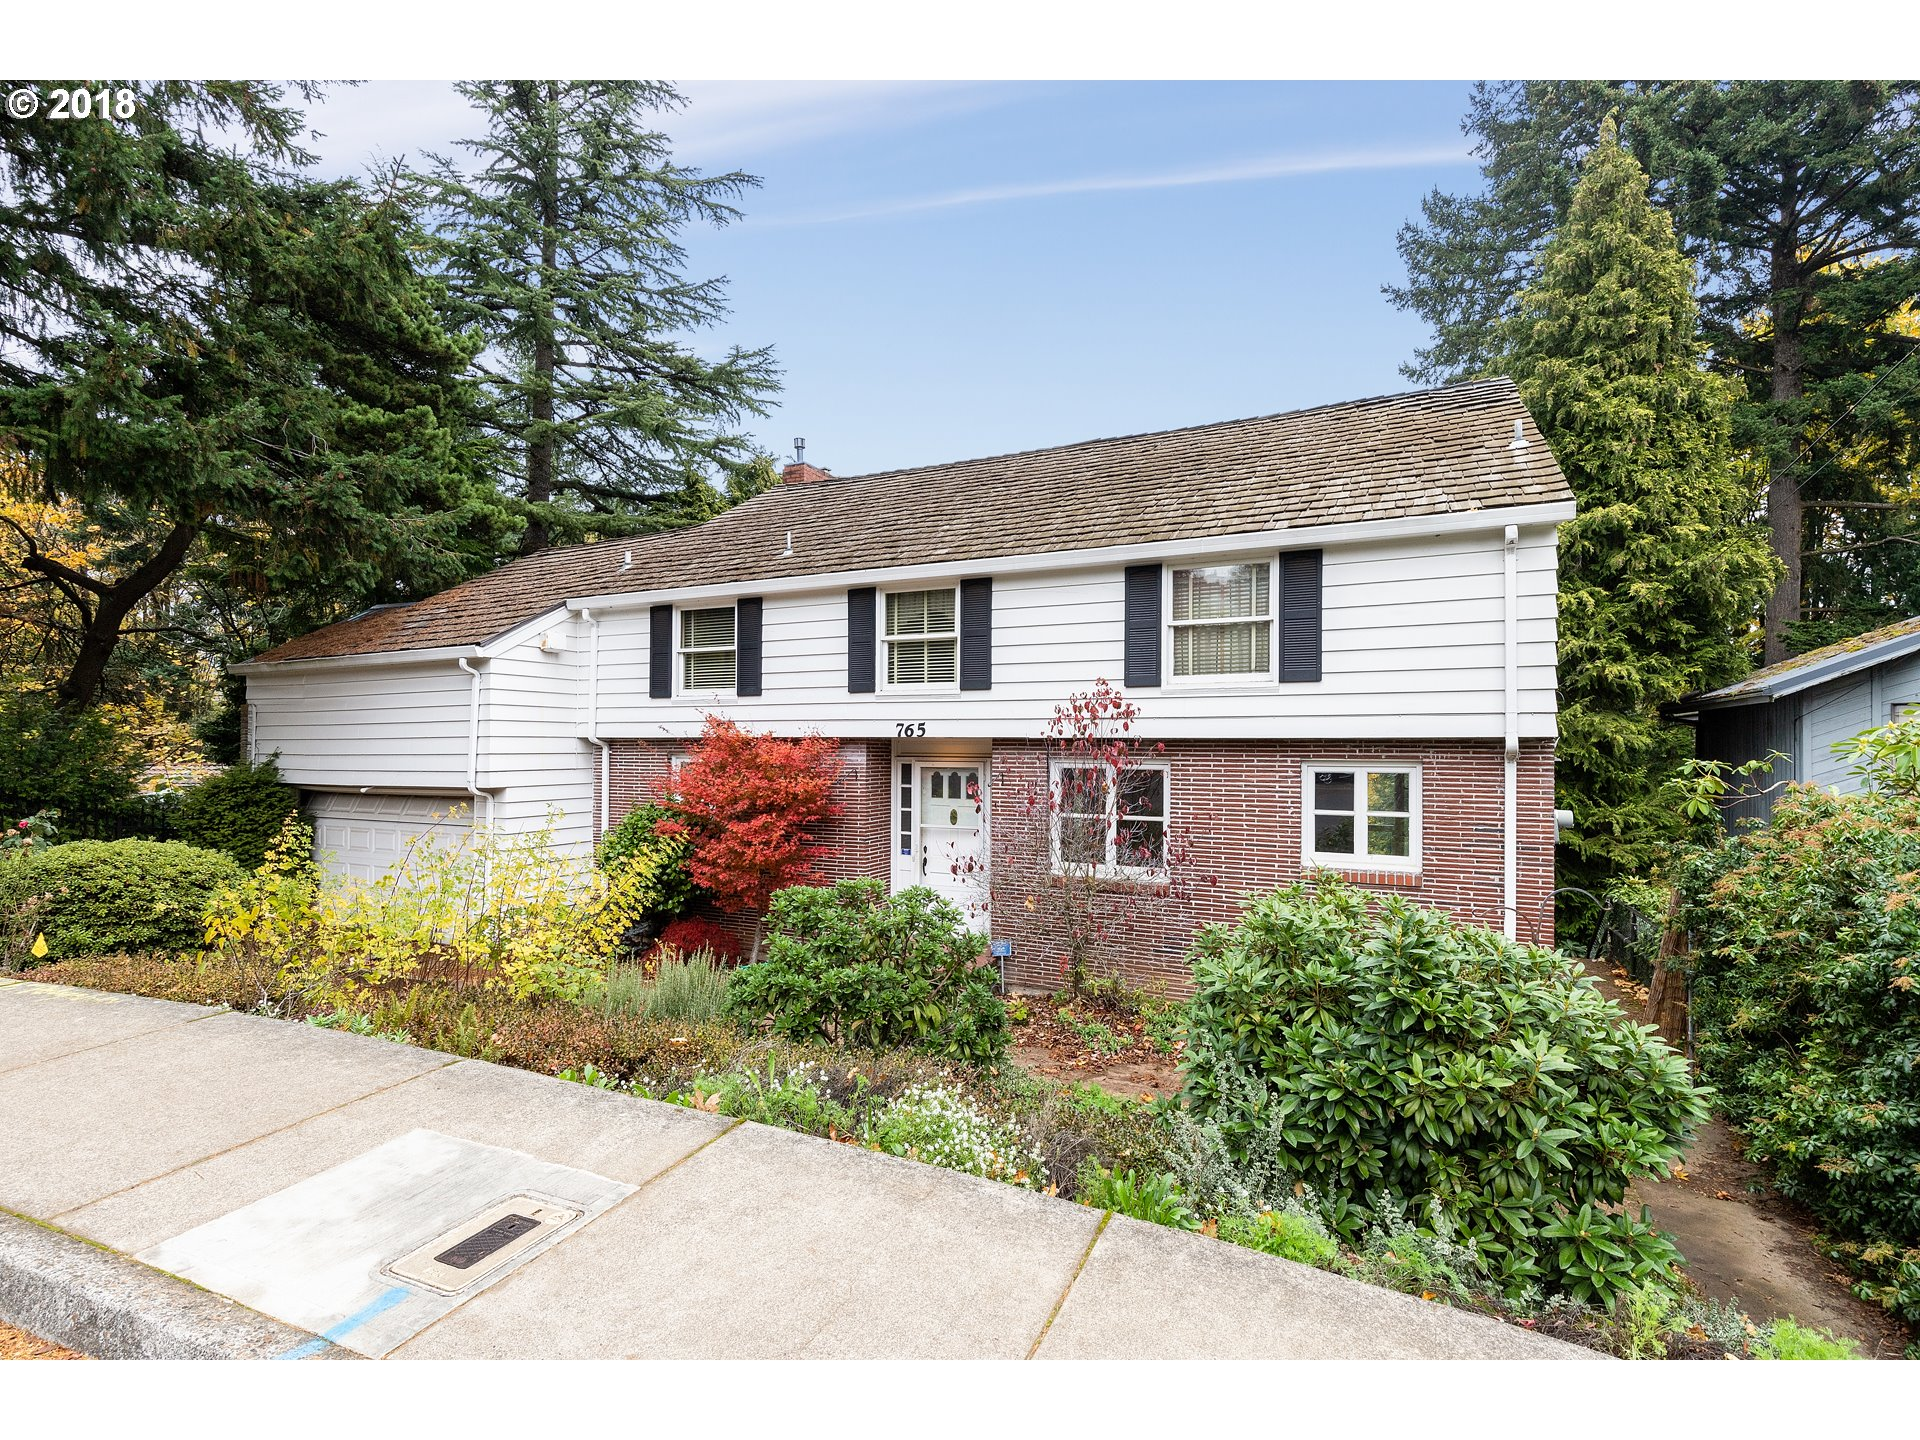 4290 sq. ft 3 bedrooms 1 bathrooms  House ,Portland, OR